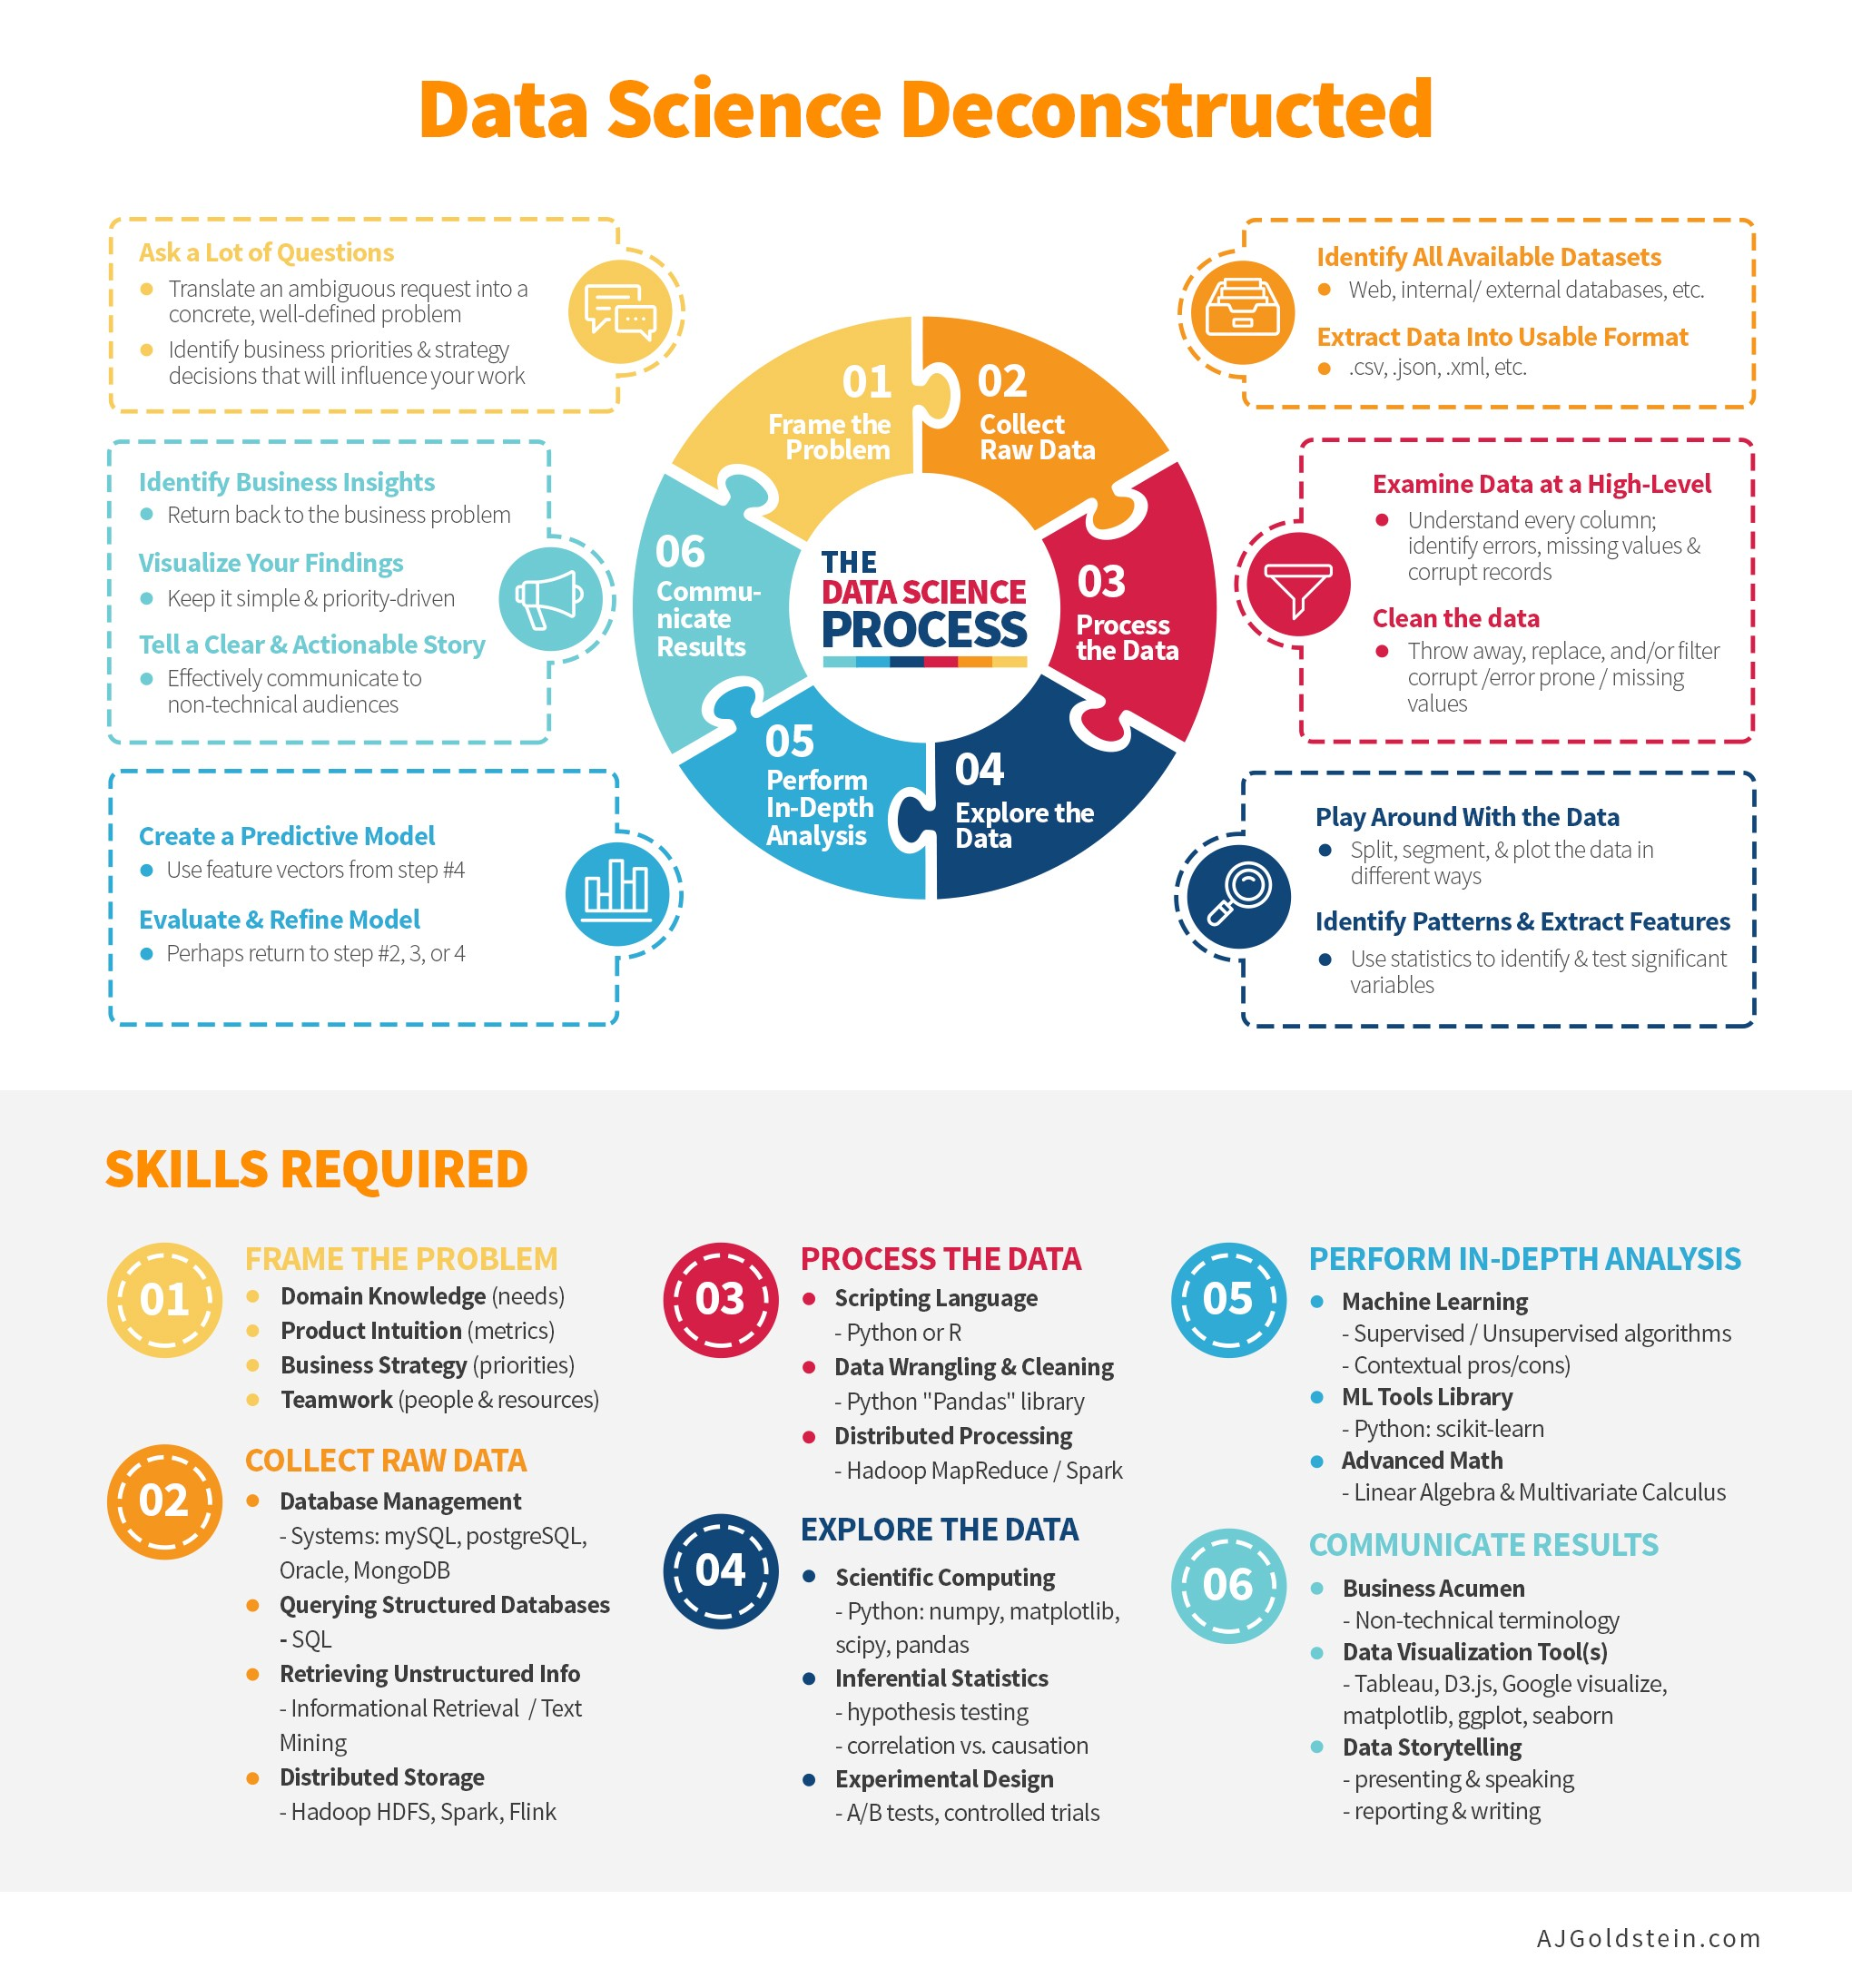 Deconstructing Data Science: Breaking The Complex Craft Into